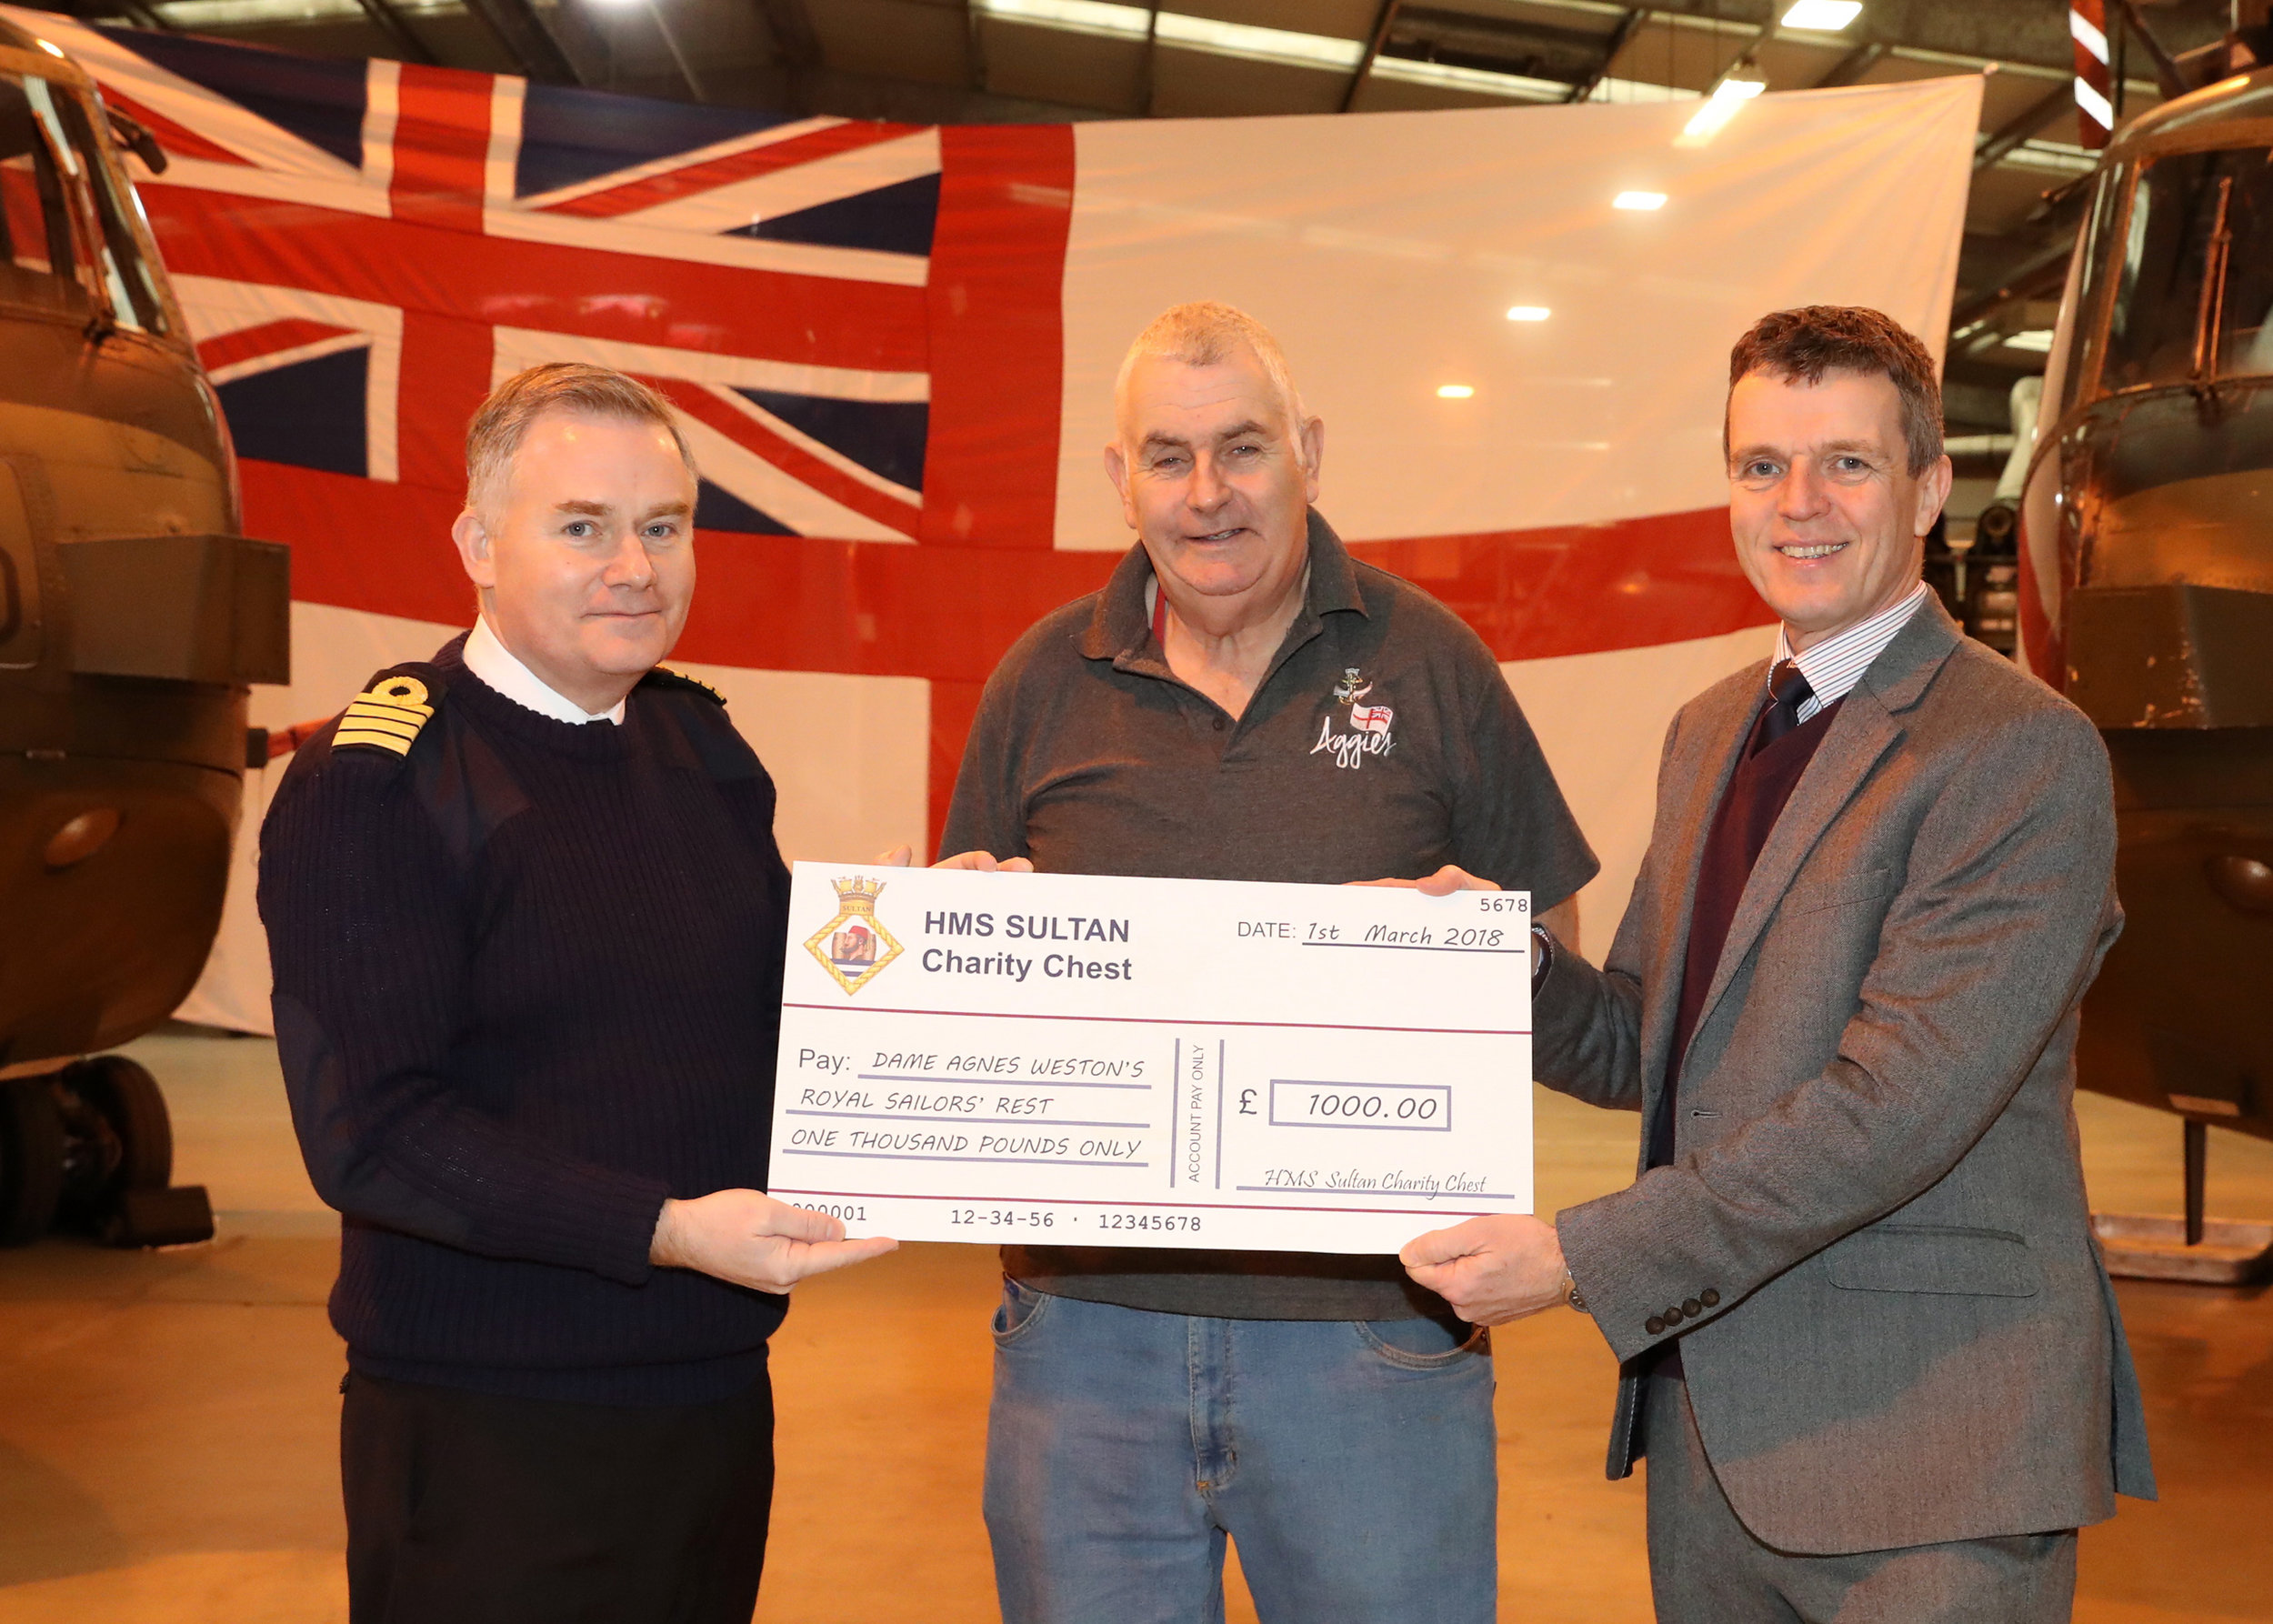 Captain Pete Towell from HMS Sultan presents a cheque to Steve Howlett, Aggie Weston's Pastoral Worker and Craig Fulton, Aggie Weston's CEO.